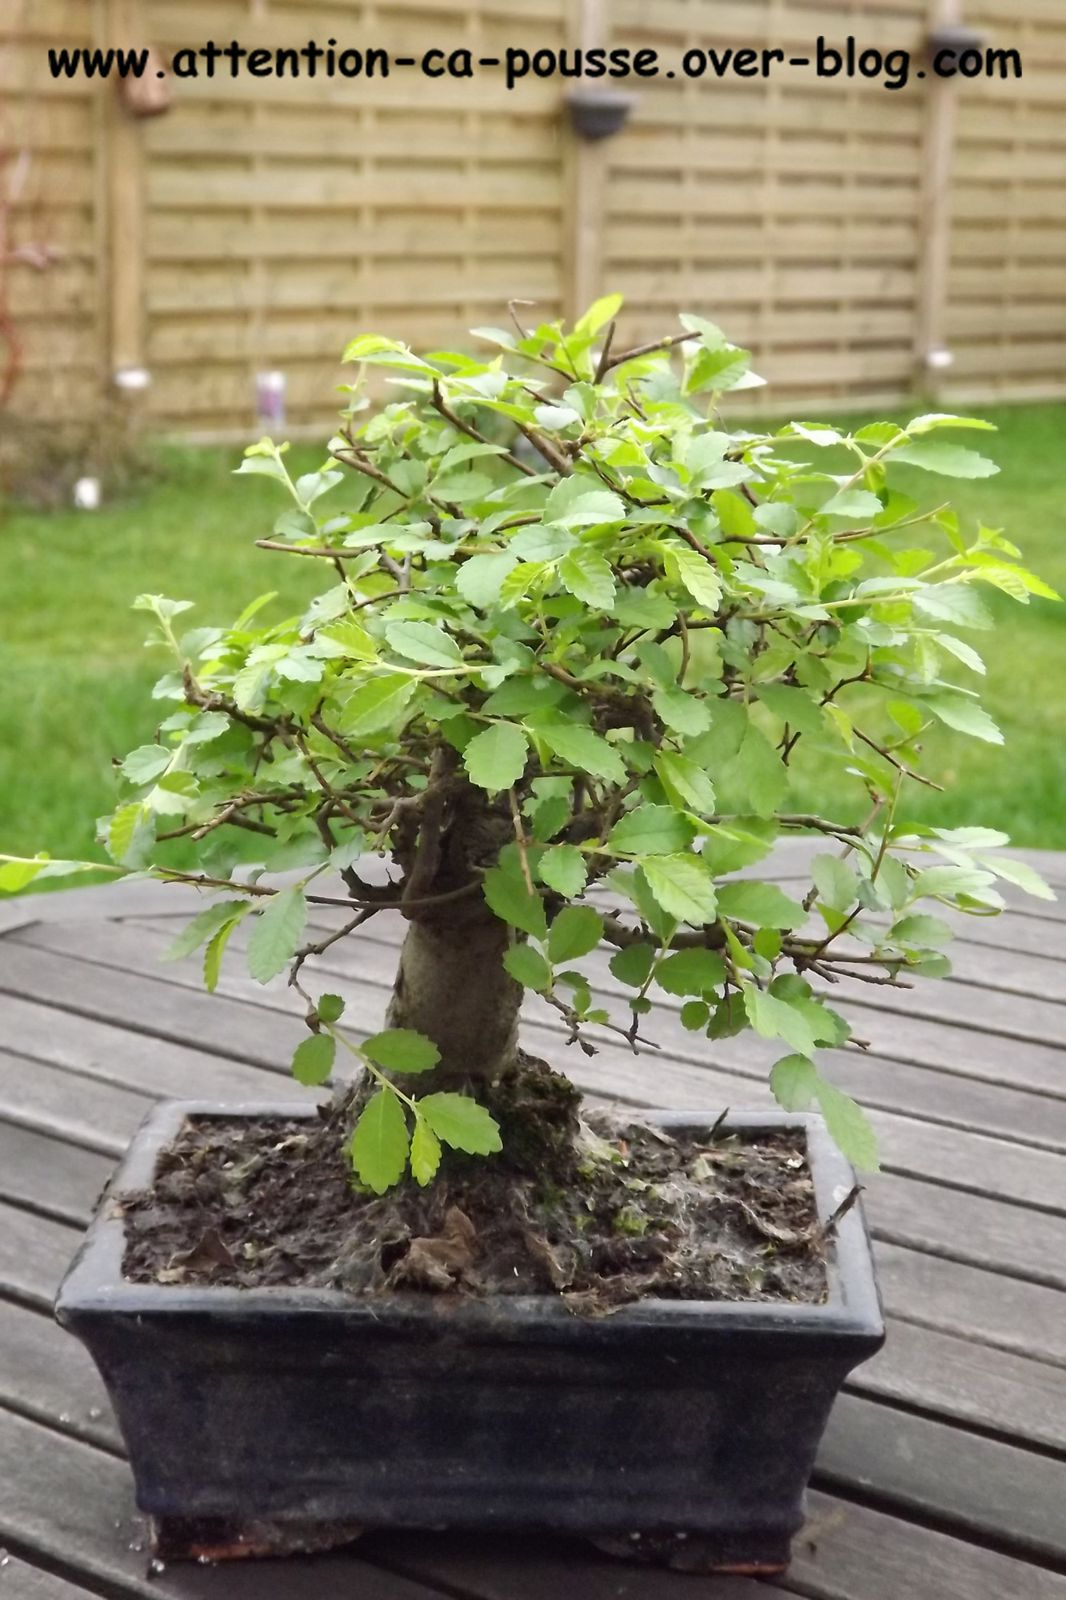 Bonsa orme de chine attention a pousse - Orme de chine bonsai ...